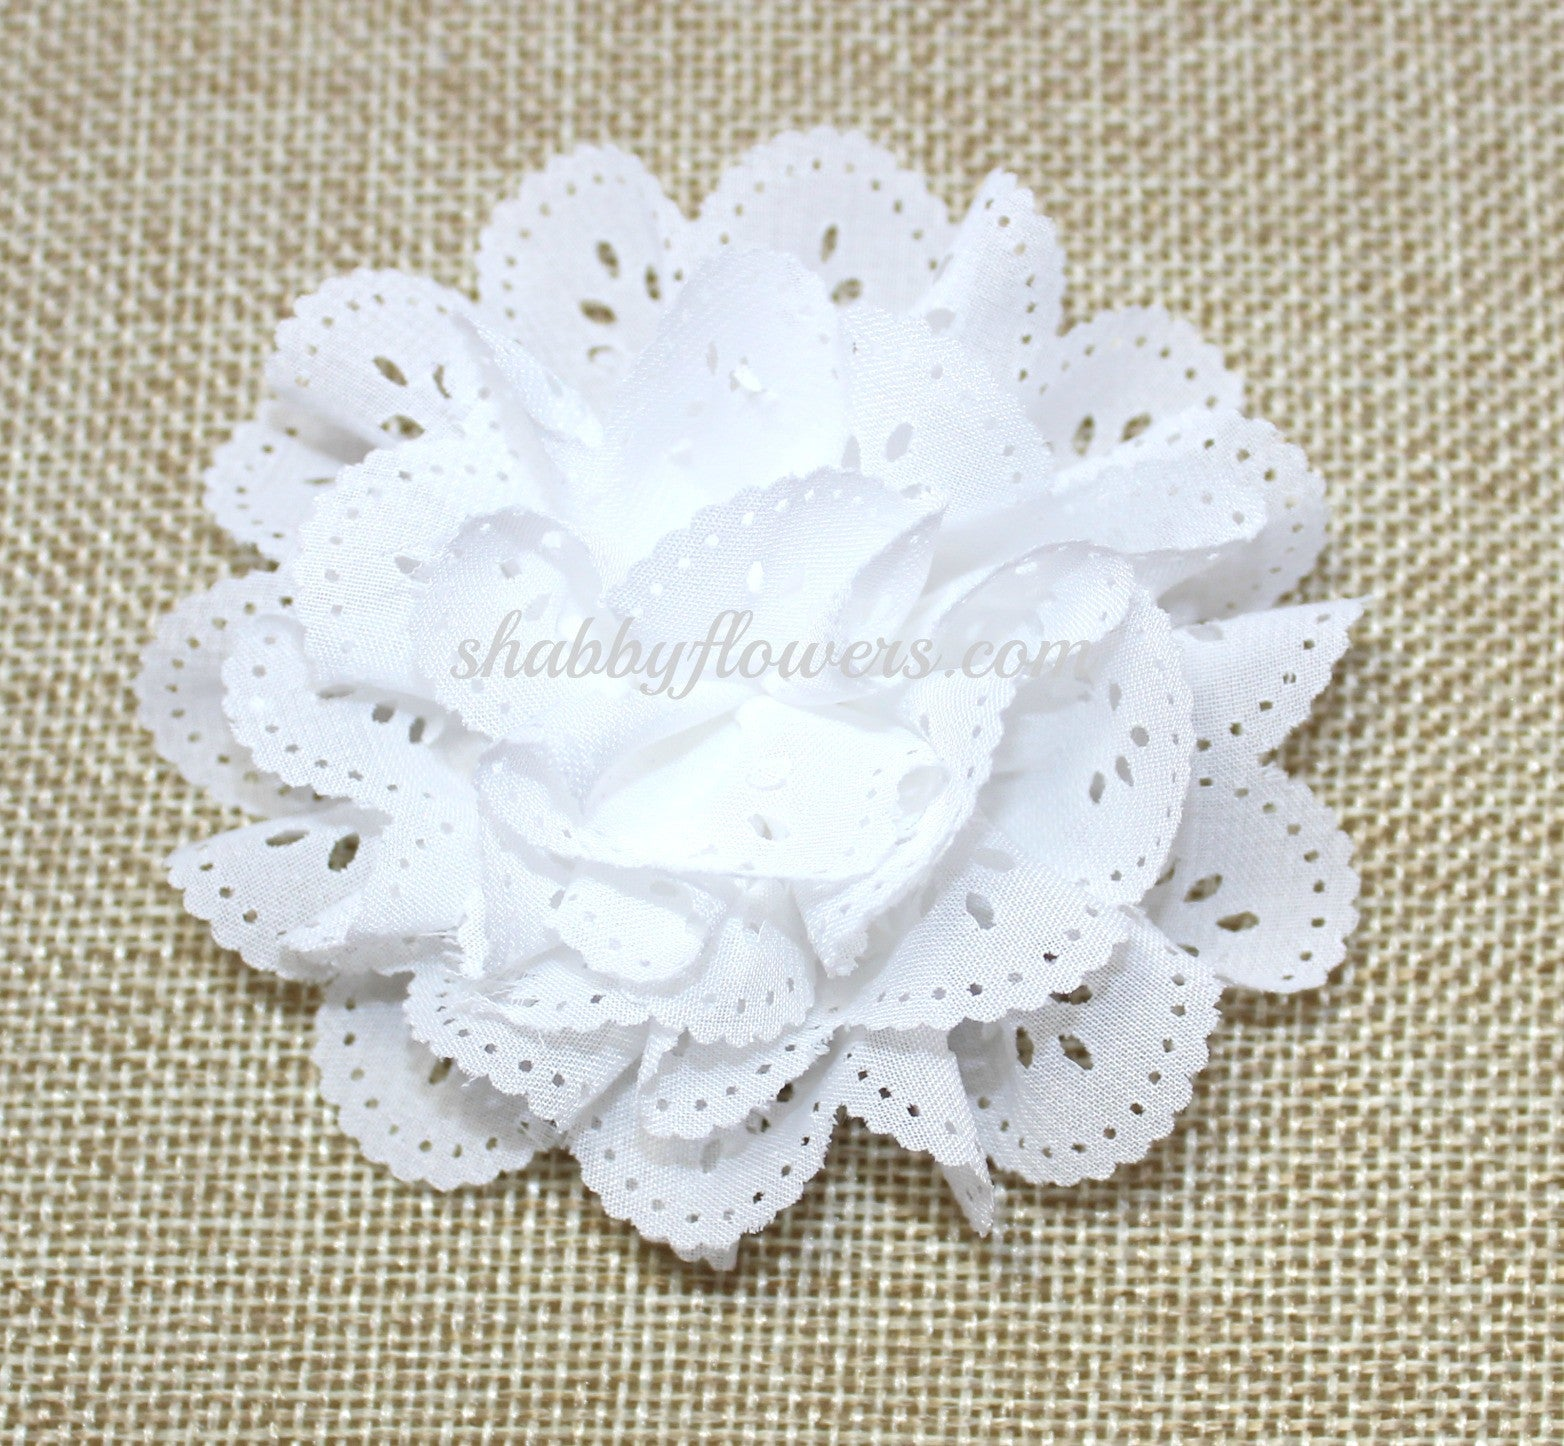 Eyelet Flower- White - shabbyflowers.com